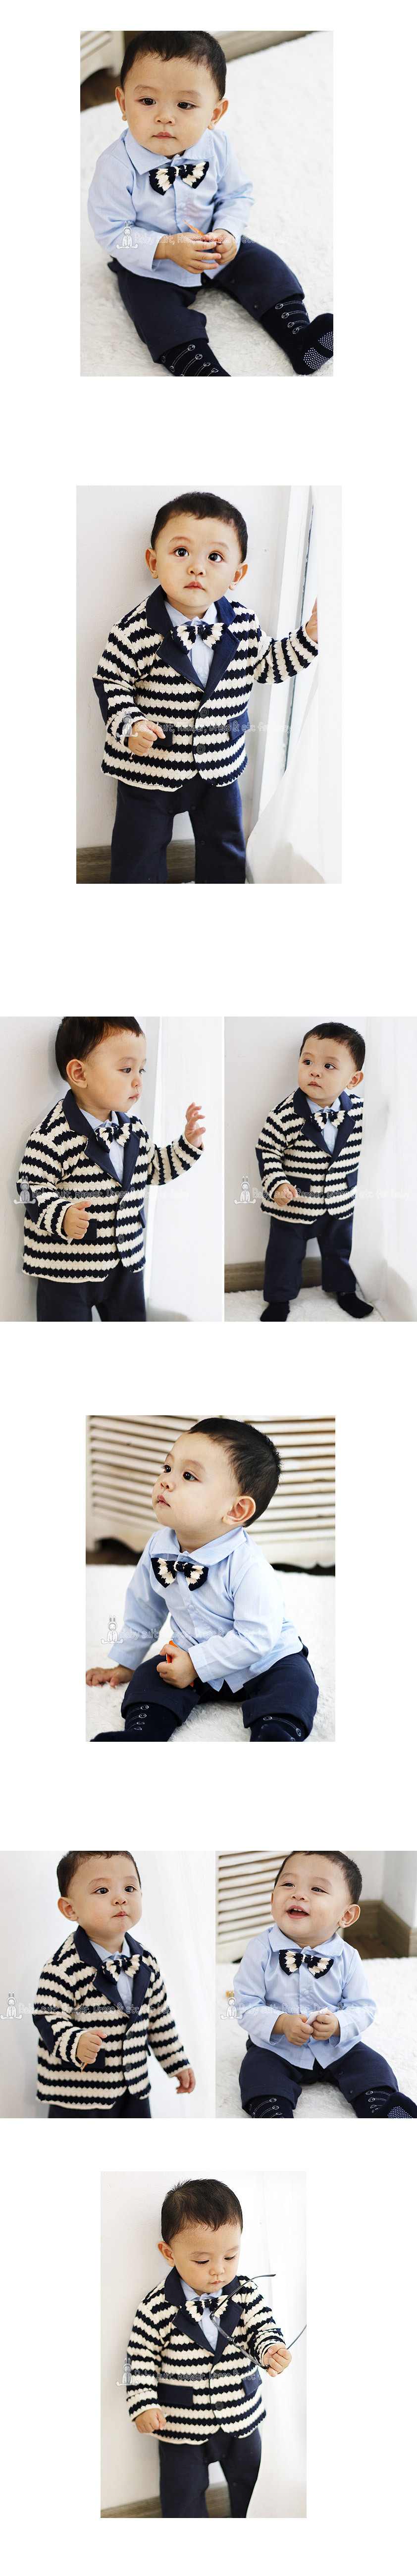 [ BABYMAX ] 1272 McCarthy Bowtie Rompers / one hundred days baby care tuxedo suit